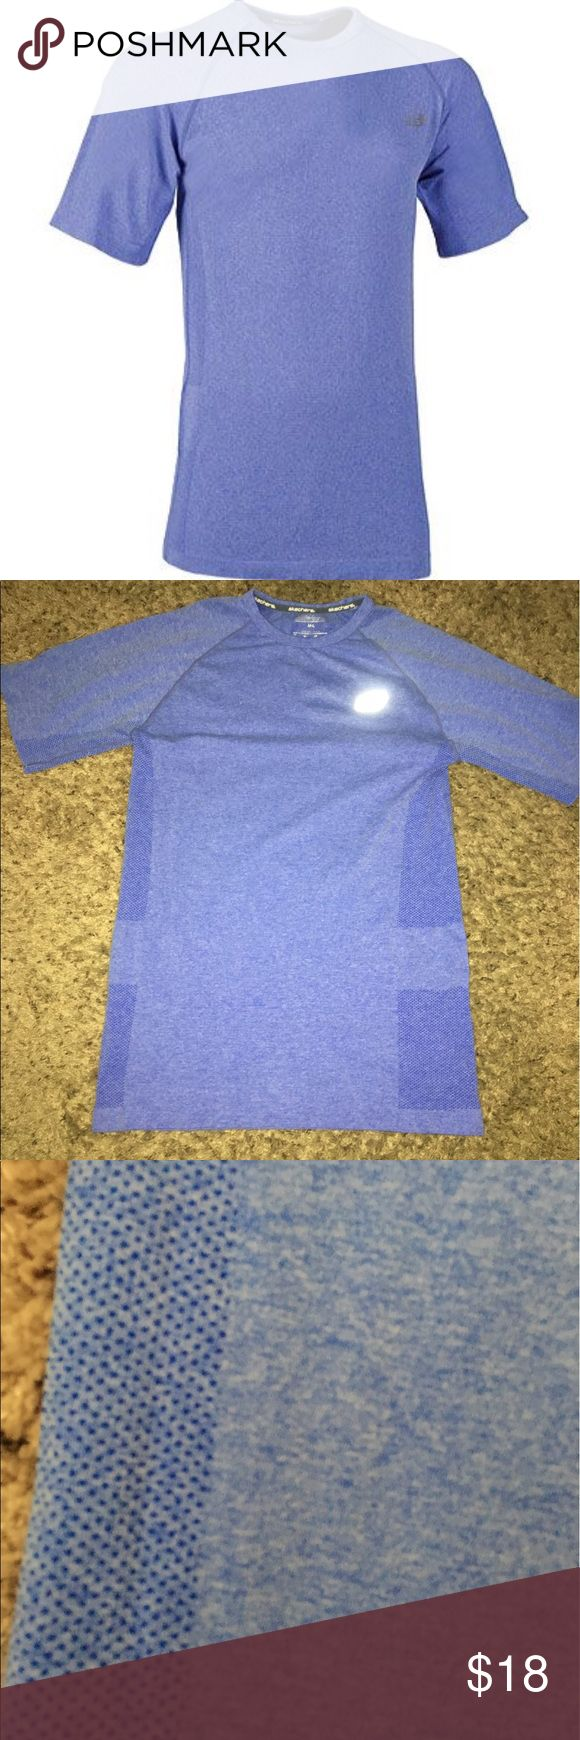 "Men's Sketchers Active Shirt Heather blue Skechers Go Run T shirt. Great for layering or not. In like new condition. Polyesyer/nylon. Size M-L. 19"" armpit to armpit unstretched. 29"" long from shoulder. Please see my other men's listings. BUNDLE & SAVE 20%!! Skechers Shirts Tees - Short Sleeve"